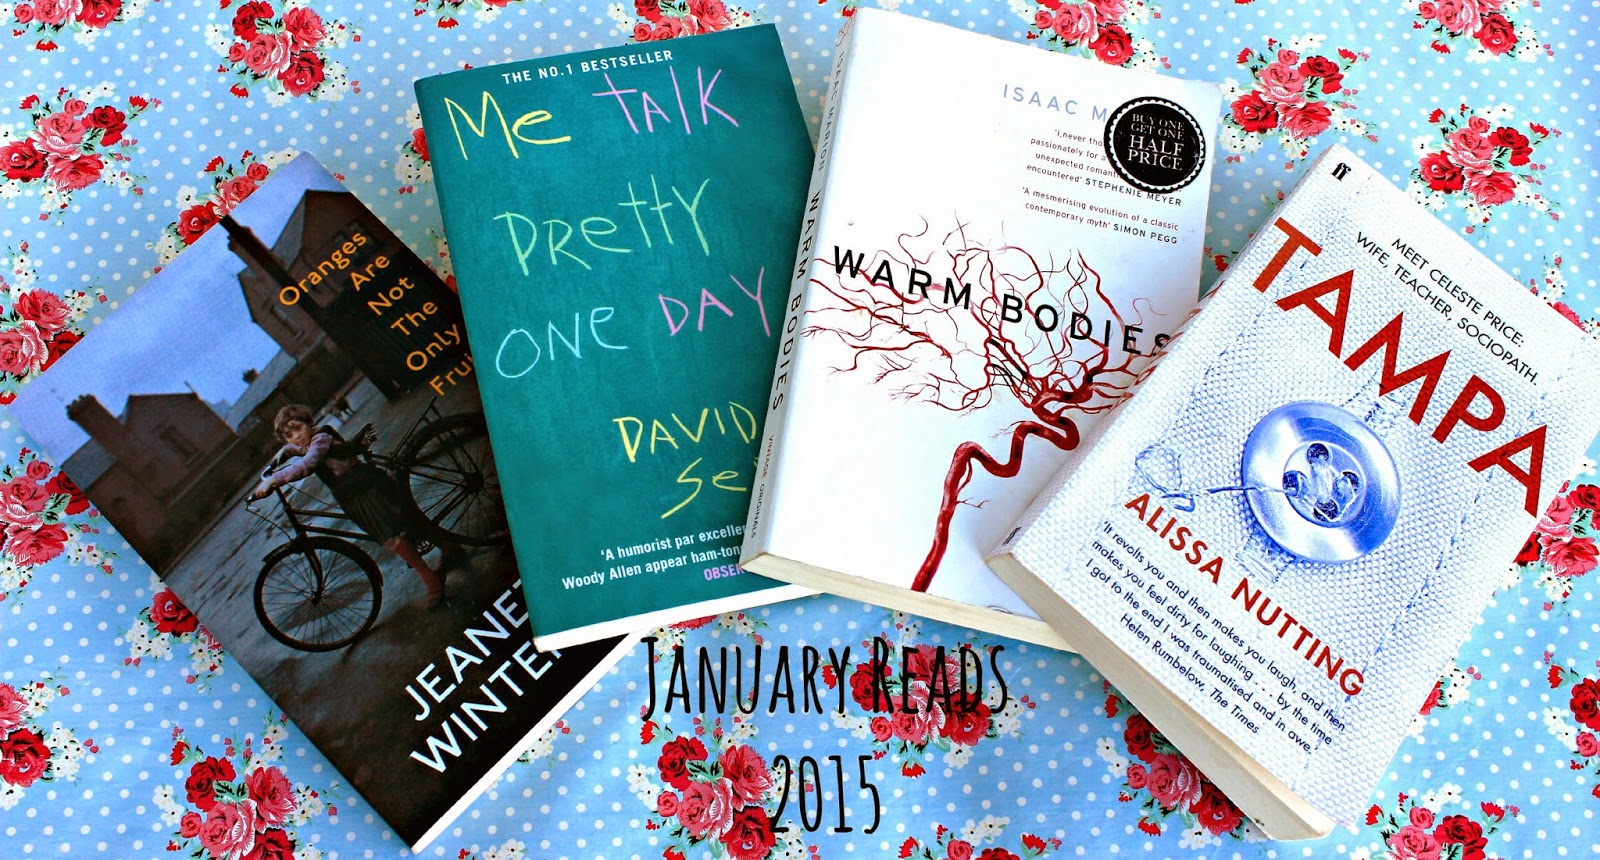 January Reads 2015